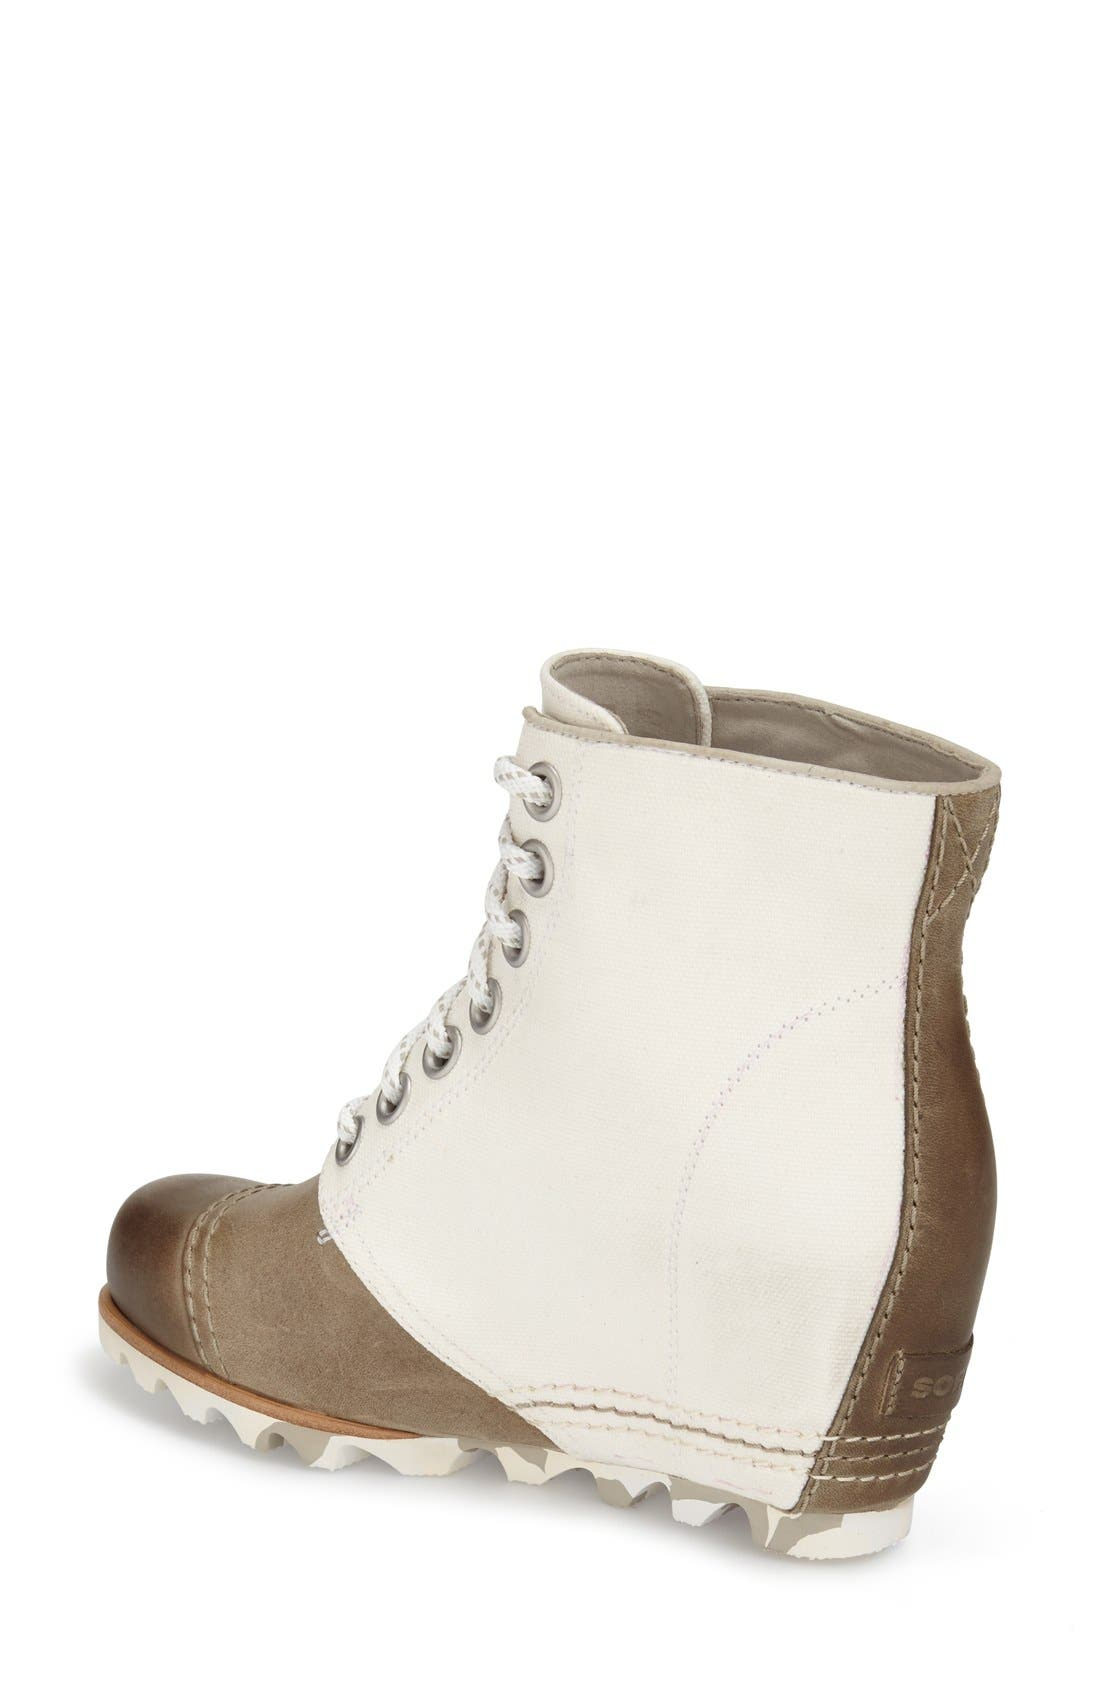 Alternate Image 2  - SOREL '1964 Premium Canvas' Waterproof Wedge Bootie (Women)